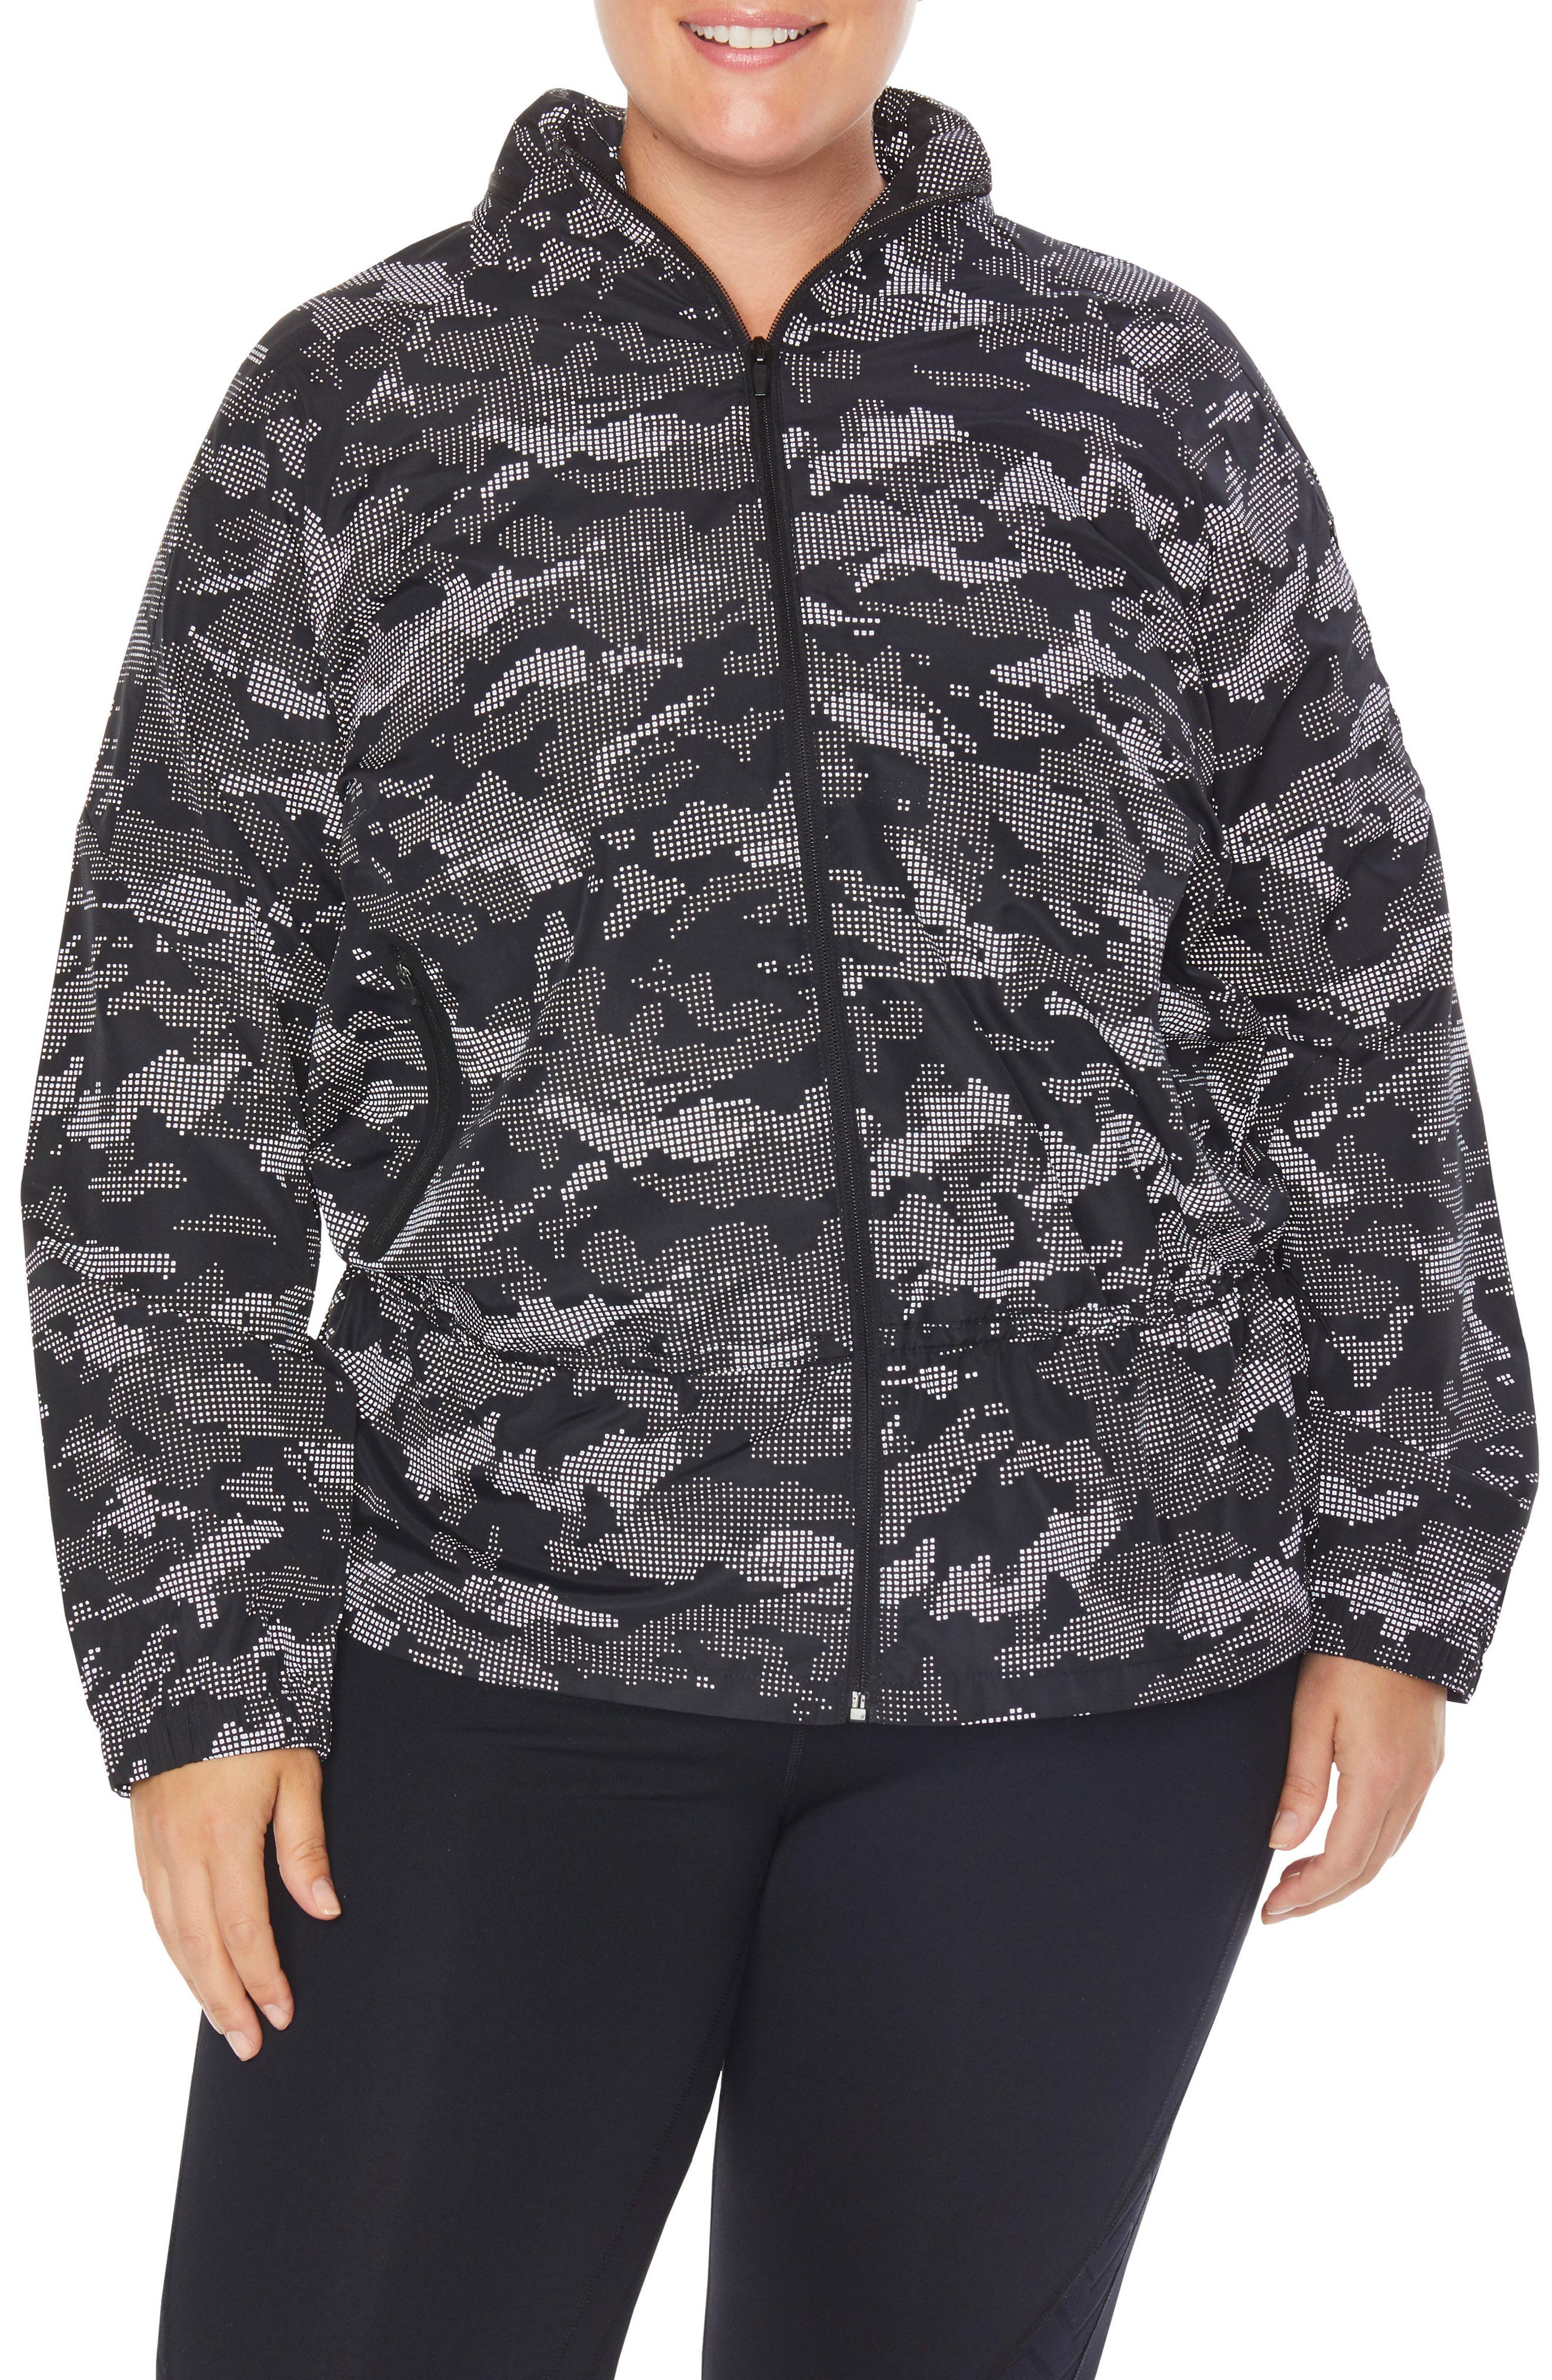 Ghost Windbreaker Jacket,                             Alternate thumbnail 2, color,                             BLACK/ CAMO REFLECTIVE